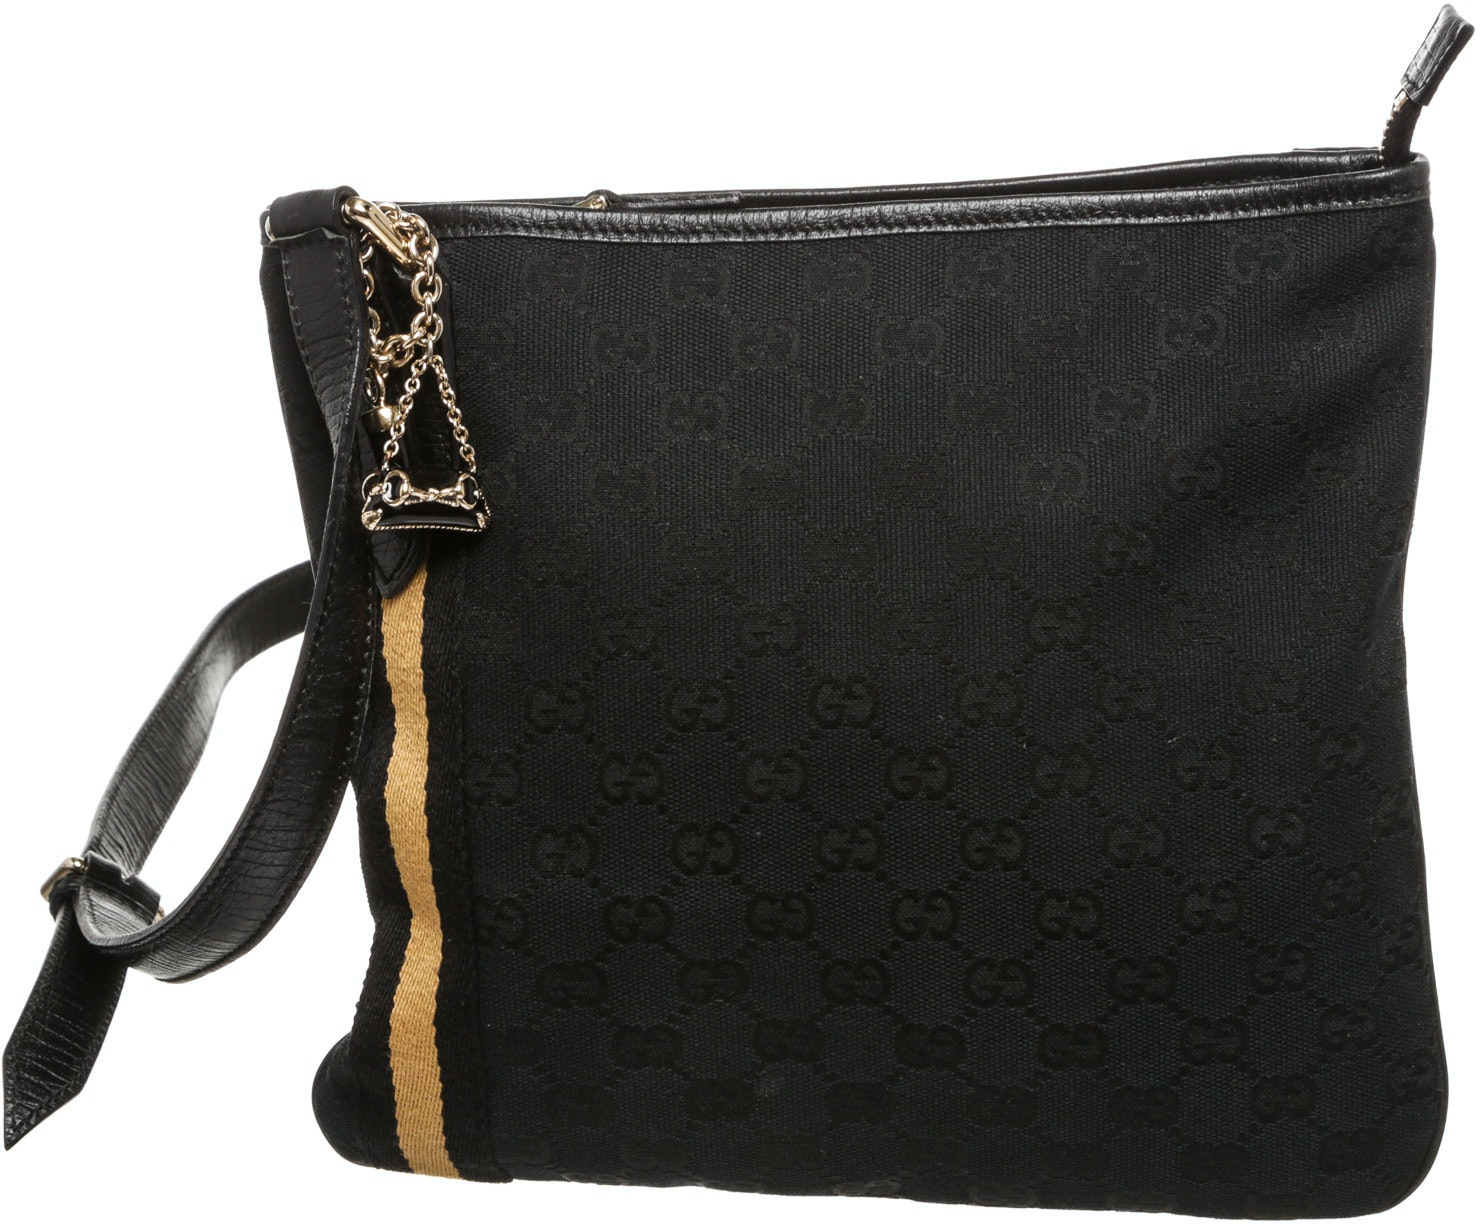 Monogram GG Black